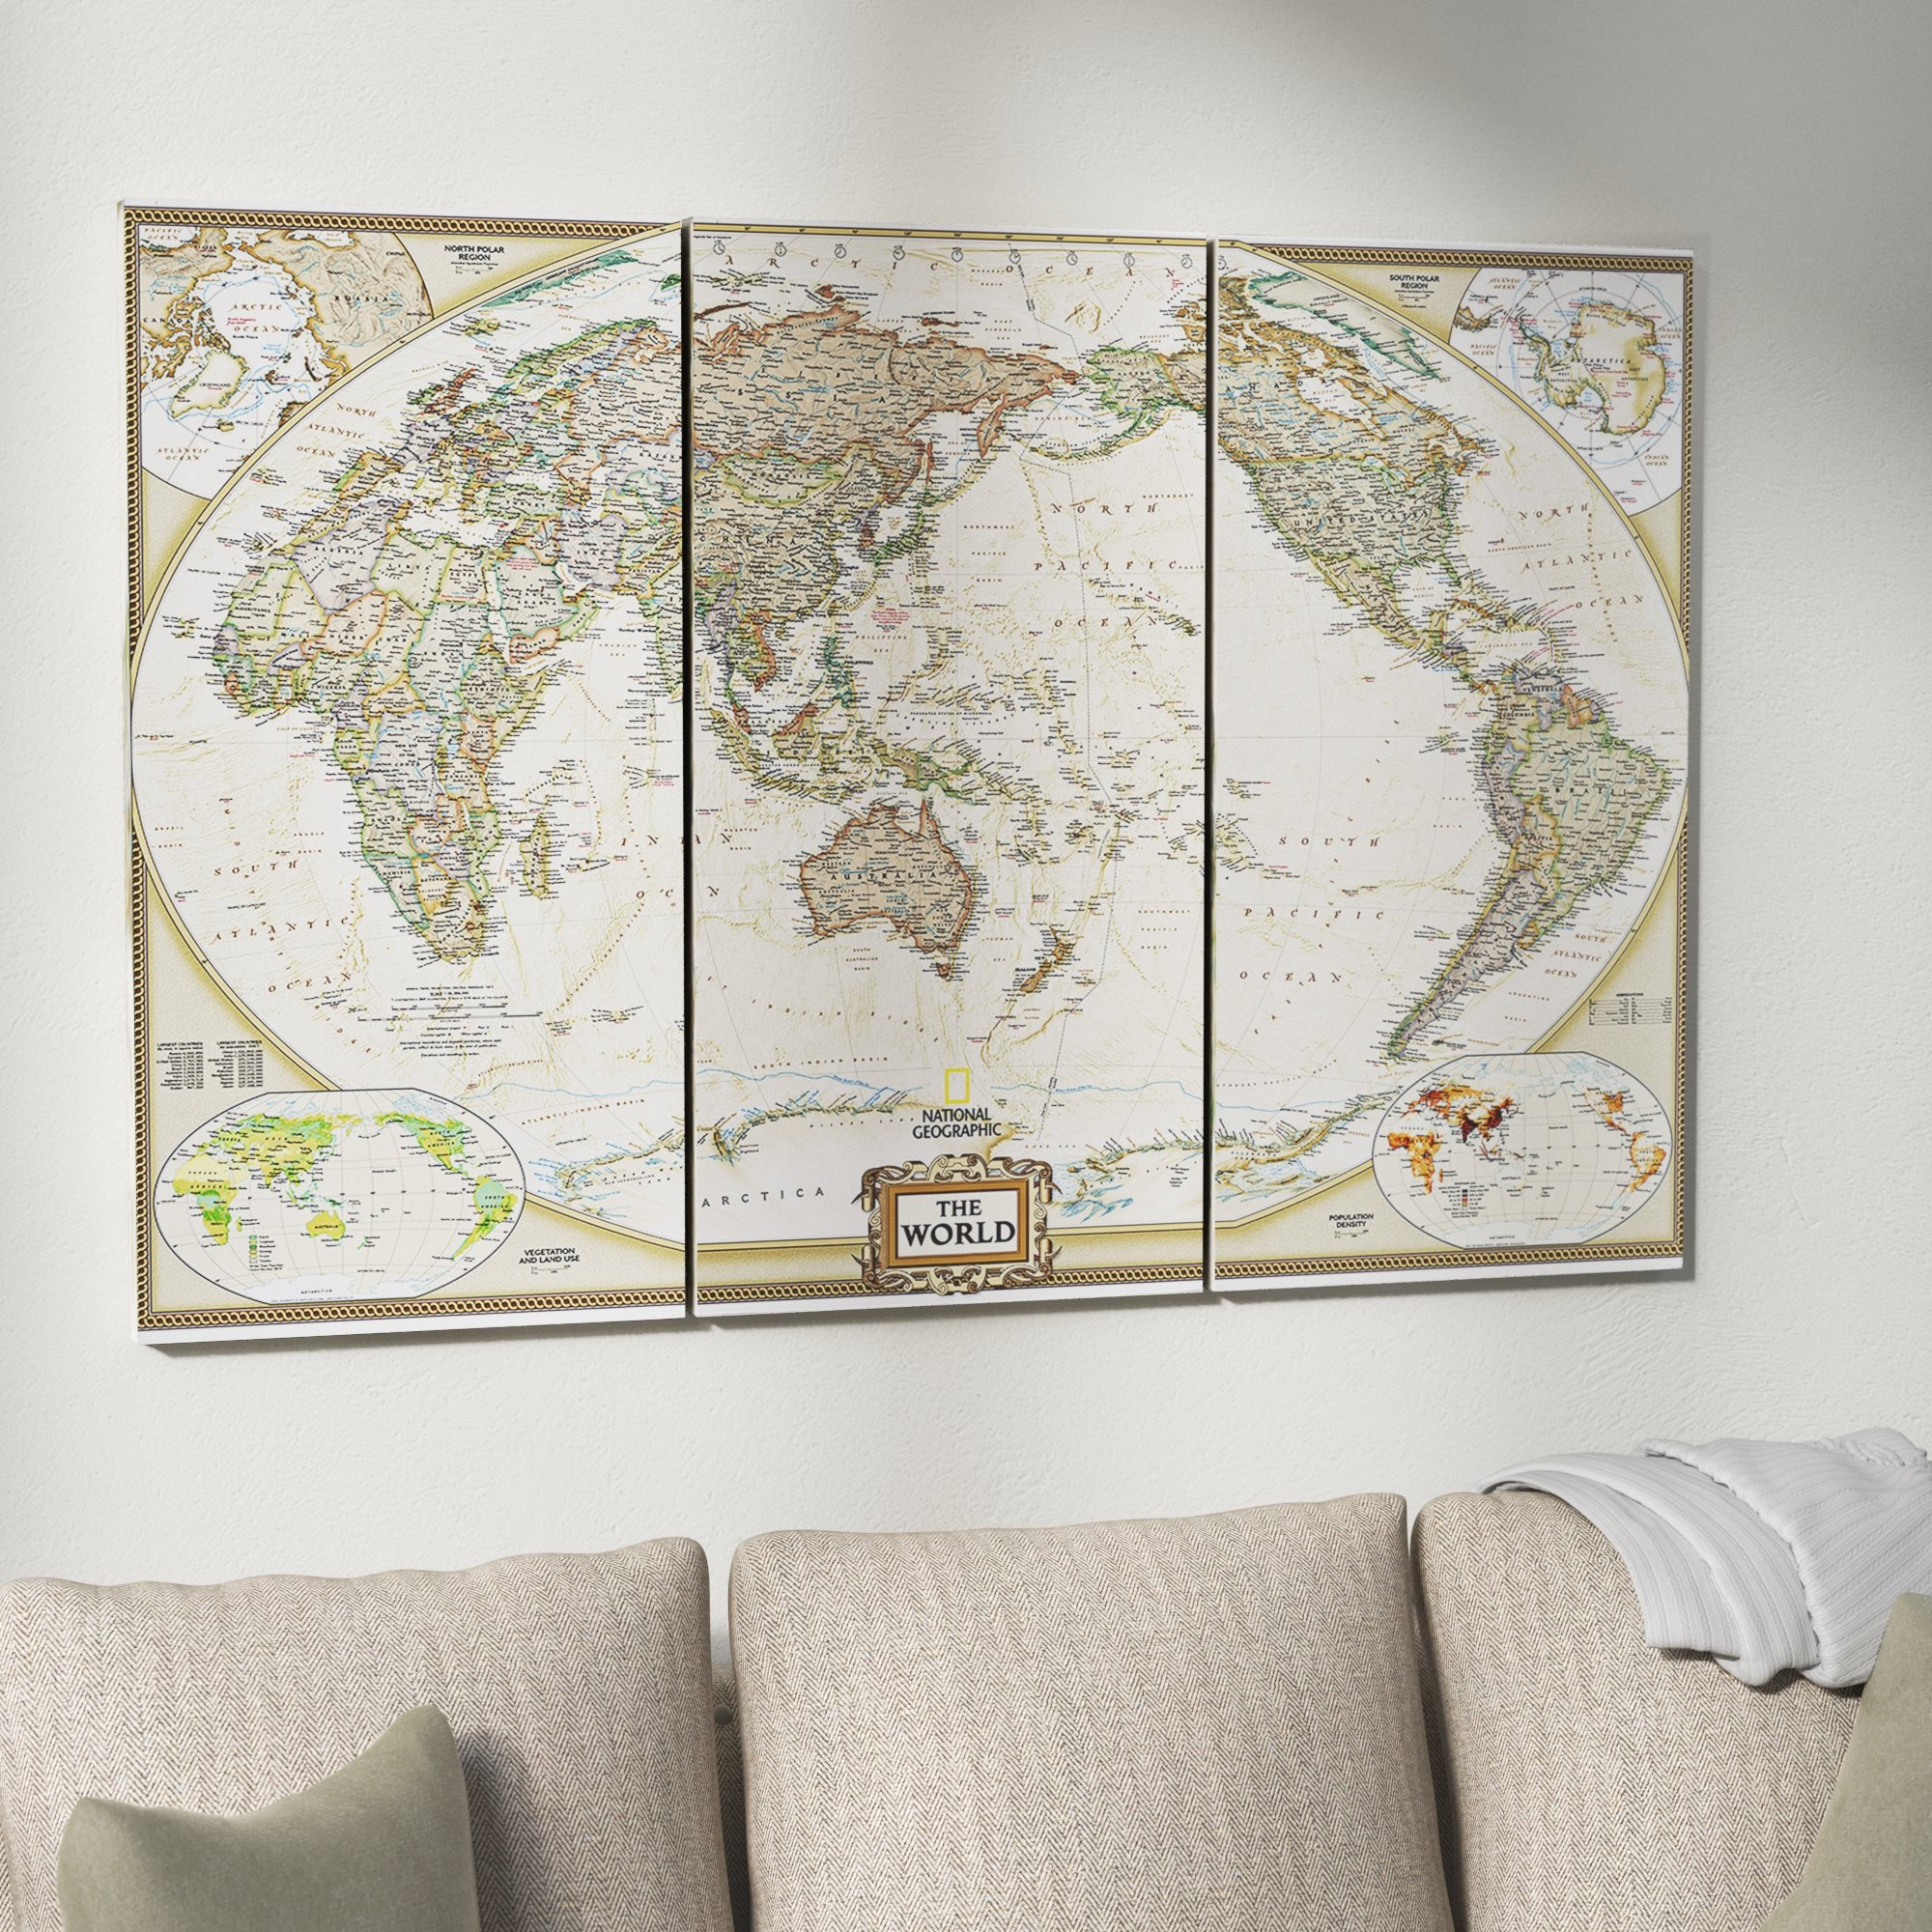 World Map Wall Art in 3 Piece Wall Decor Sets By Wrought Studio (Image 26 of 30)